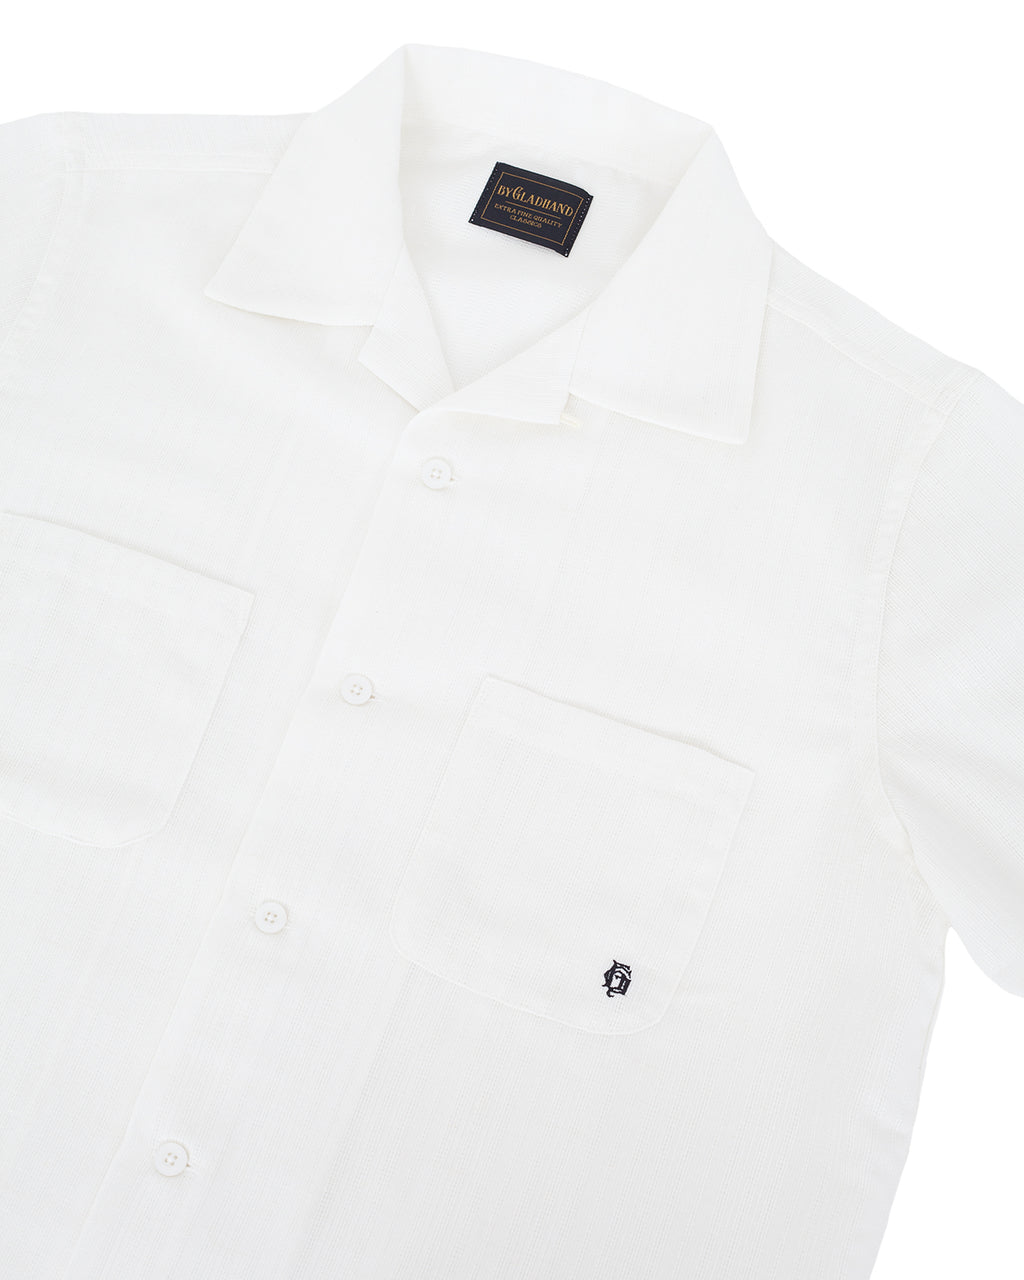 By Glad Hand, Voyage Shirt, Short Sleeve, White